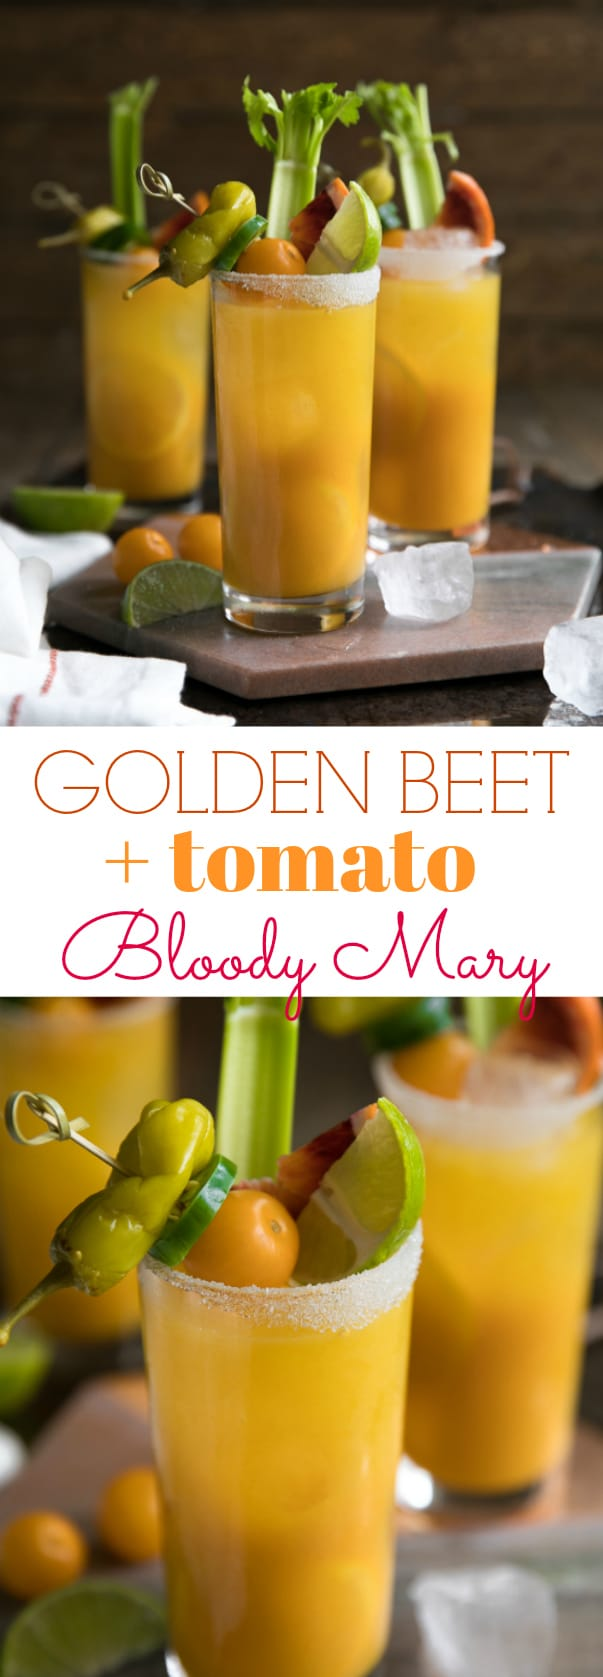 Golden Beet and Tomato Bloody Mary. Cheers to the weekend with this nutrient (and vodka) filled Golden Beet and Tomato Bloody Mary. Made with golden beets, yellow heirloom tomatoes, vodka, and all the fixings, these beautiful Bloody Mary's are delicious, and just what your next brunch party calls for. via @theforkedspoon #bloodymary #beets #goldenbeets #brunch #recipe #cocktailrecipe #vodka #easyrecipe #breakfast | For this recipe and more visit, https://theforkedspoon.com/